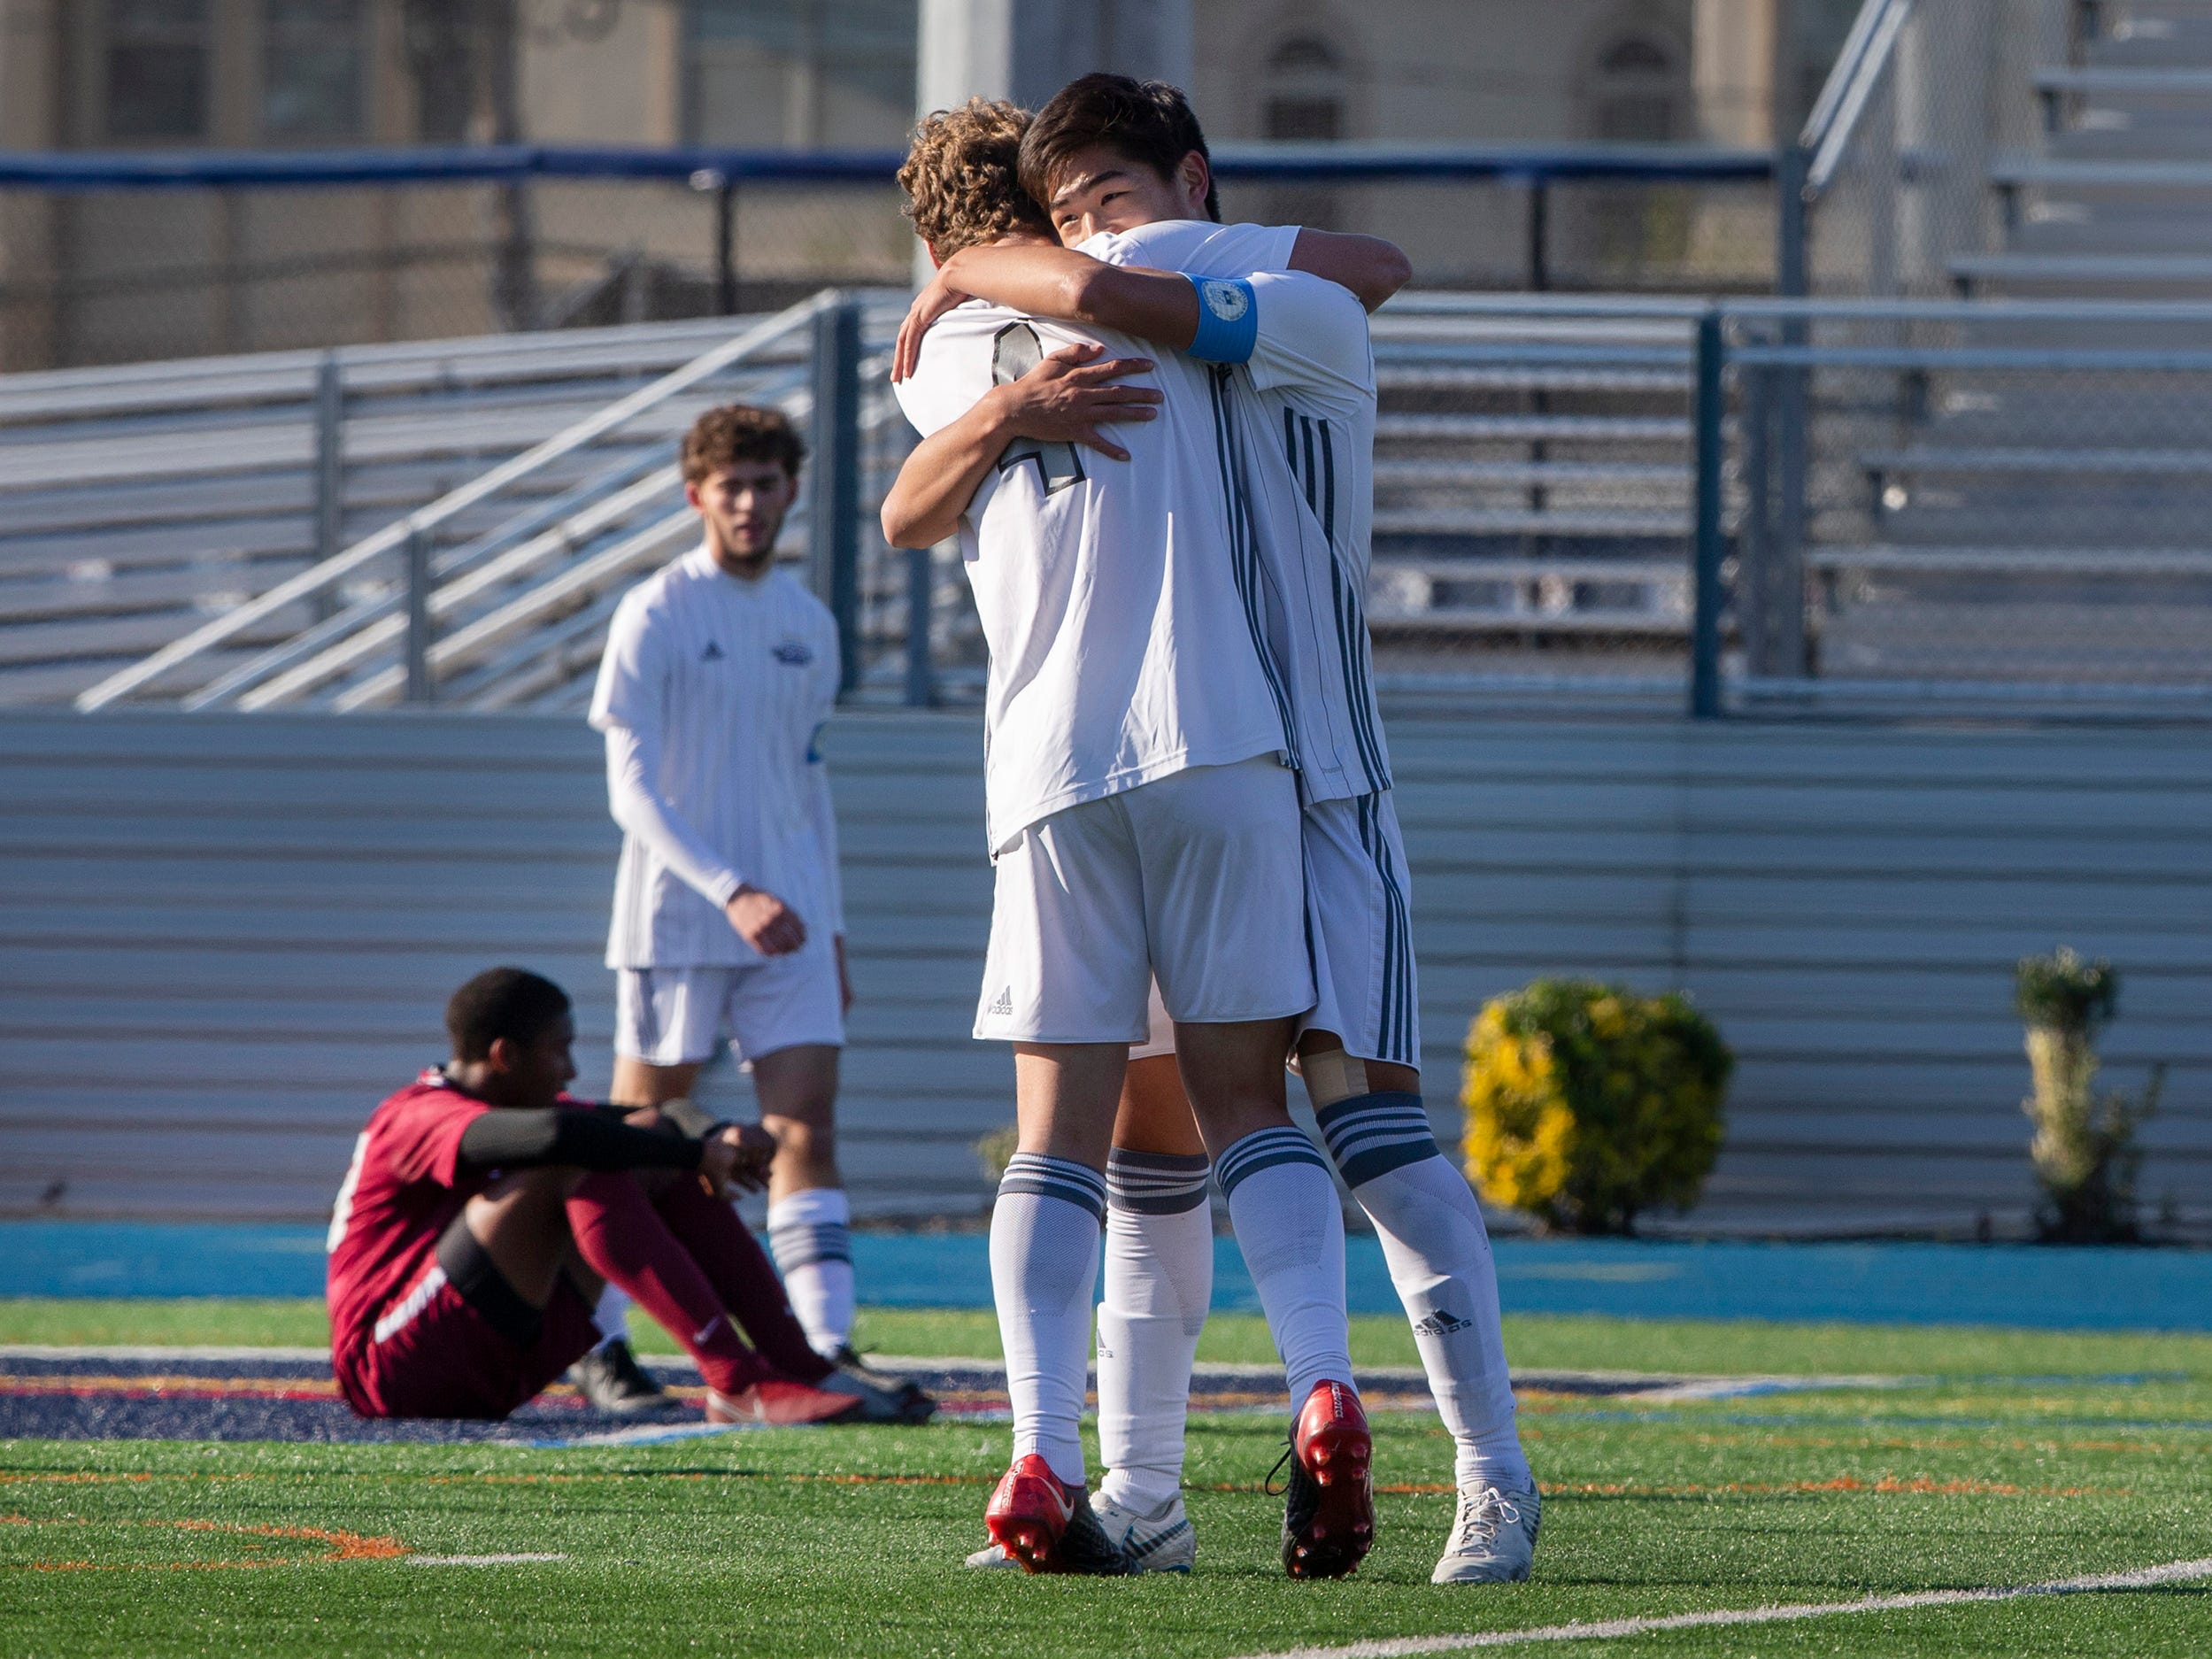 Gill-St Bernard's #11 Dan Shen hugs Alex Borto as time runs out and they celelbrate their State Championship win. Gill-St Bernards vs Rutgers Prep in NJSIAA Boys Non-public B State Soccer Final